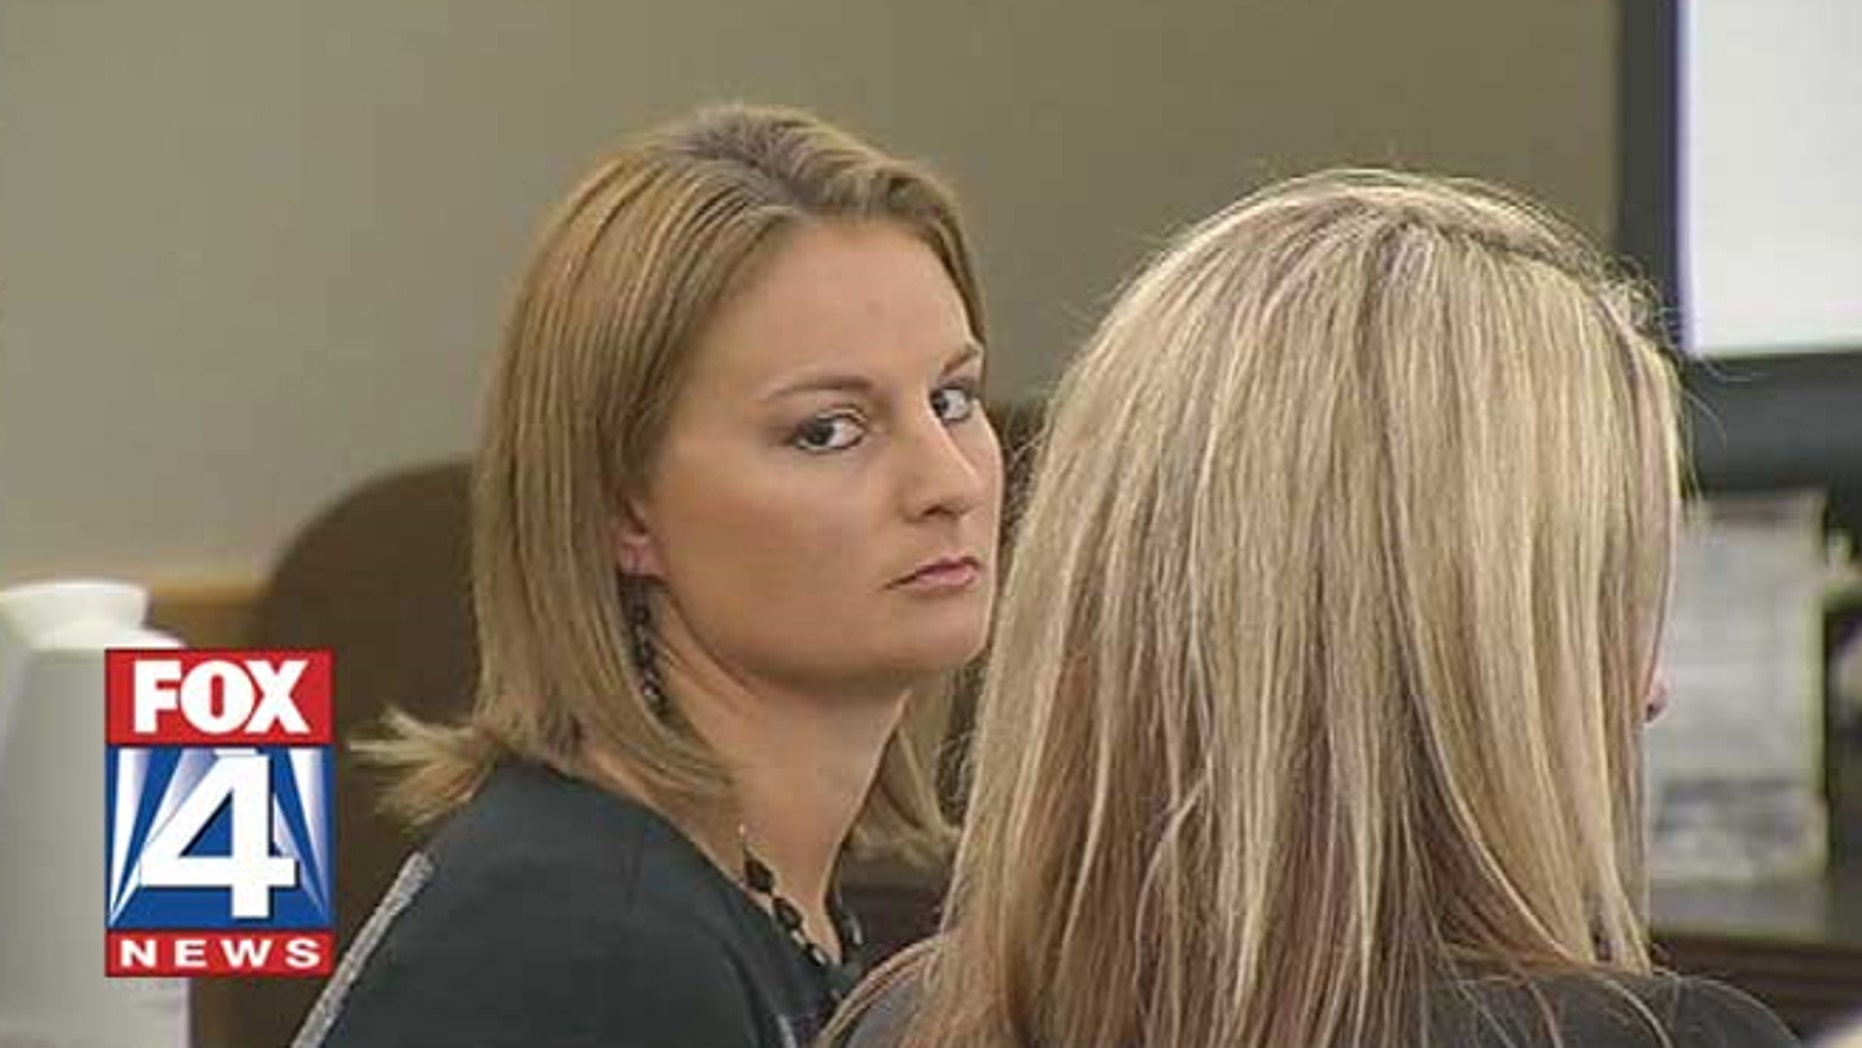 Brittni Colleps gets five years in prison for having an improper relationship with five of her students.